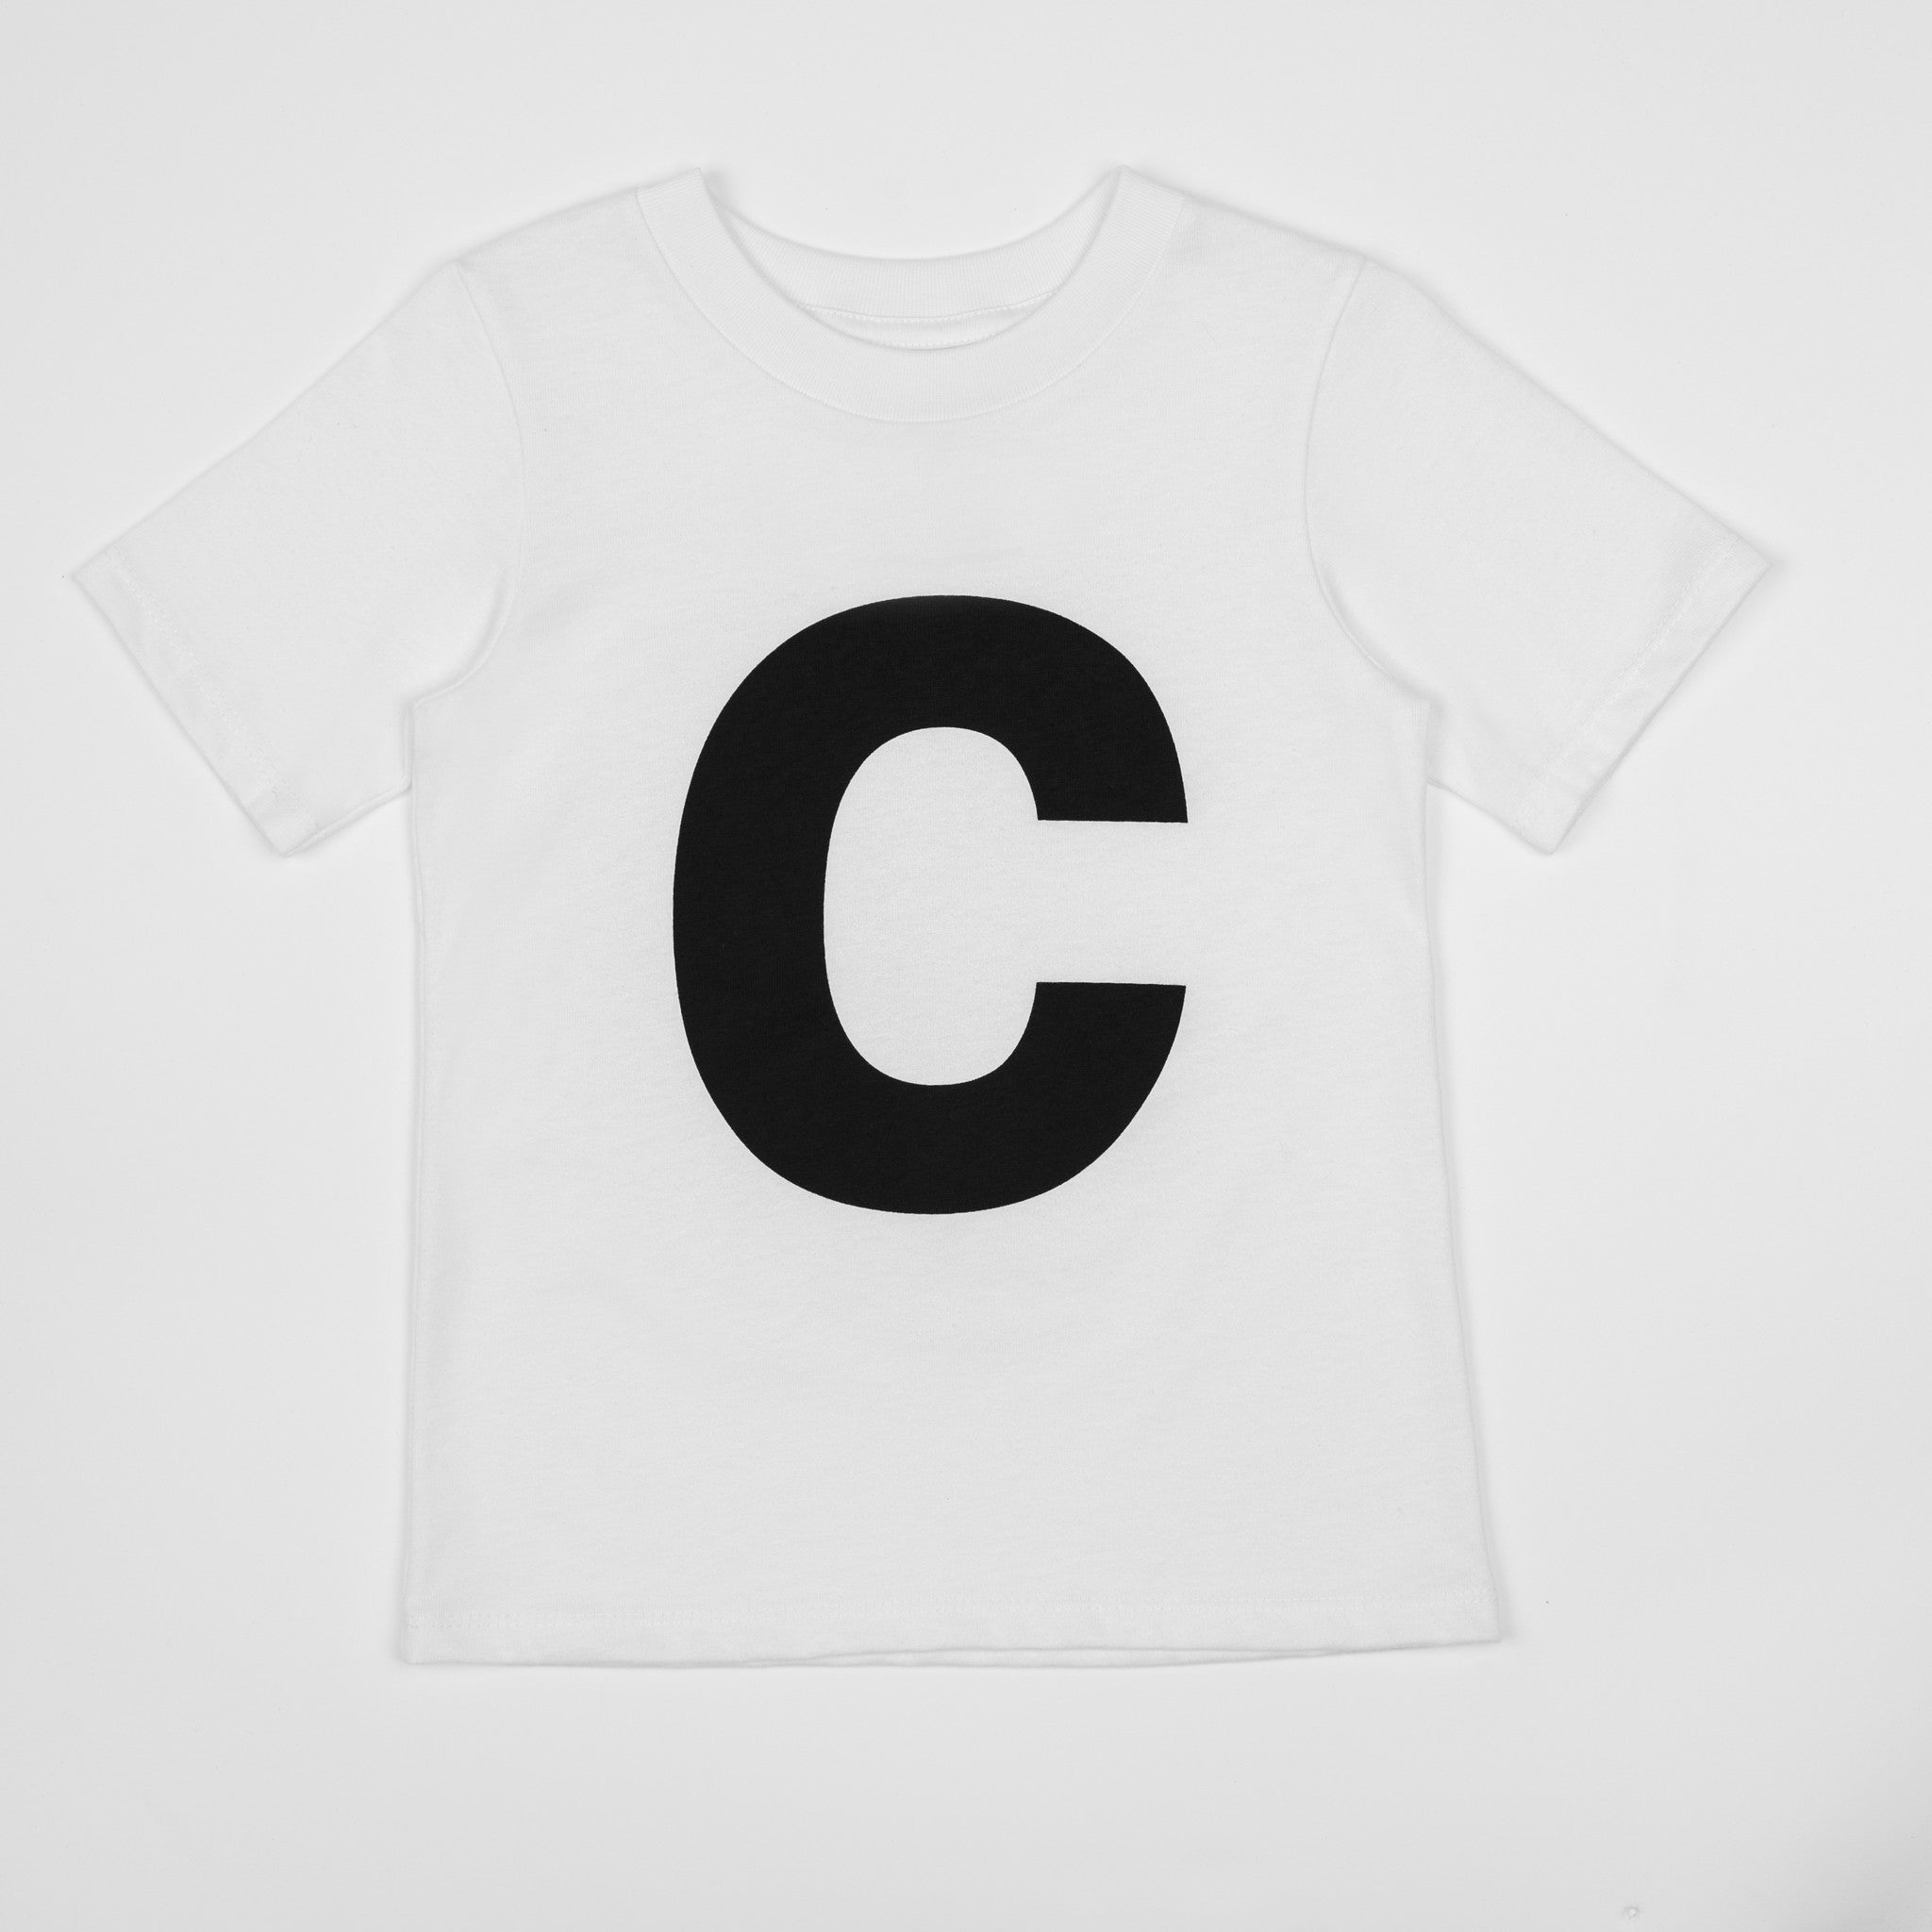 Letter C White T Shirt With Black Print Numbers And Letters